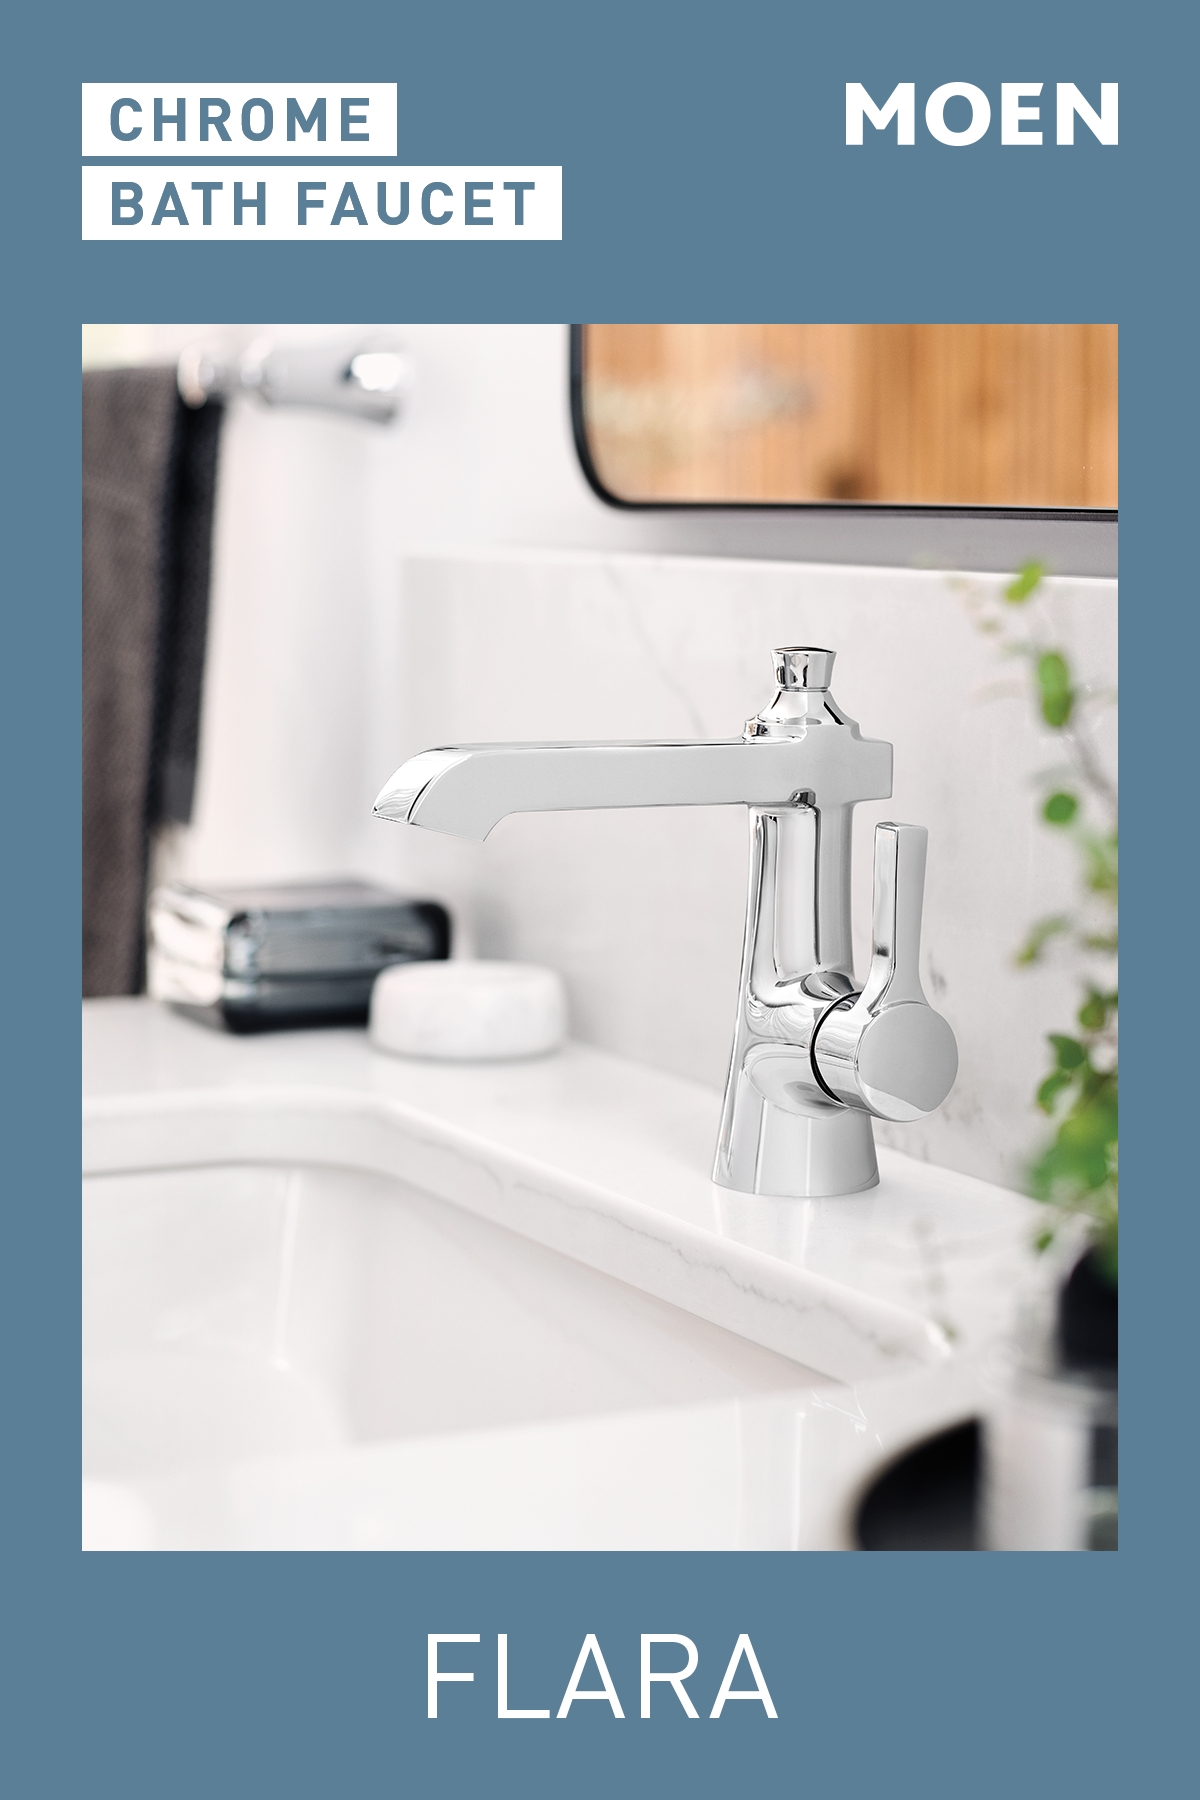 The Flara Single Handle Bathroom Faucet Combines Traditional Design And Modern Ed Restroom Renovation Single Handle Bathroom Faucet Bathroom Inspiration Modern [ 1800 x 1200 Pixel ]